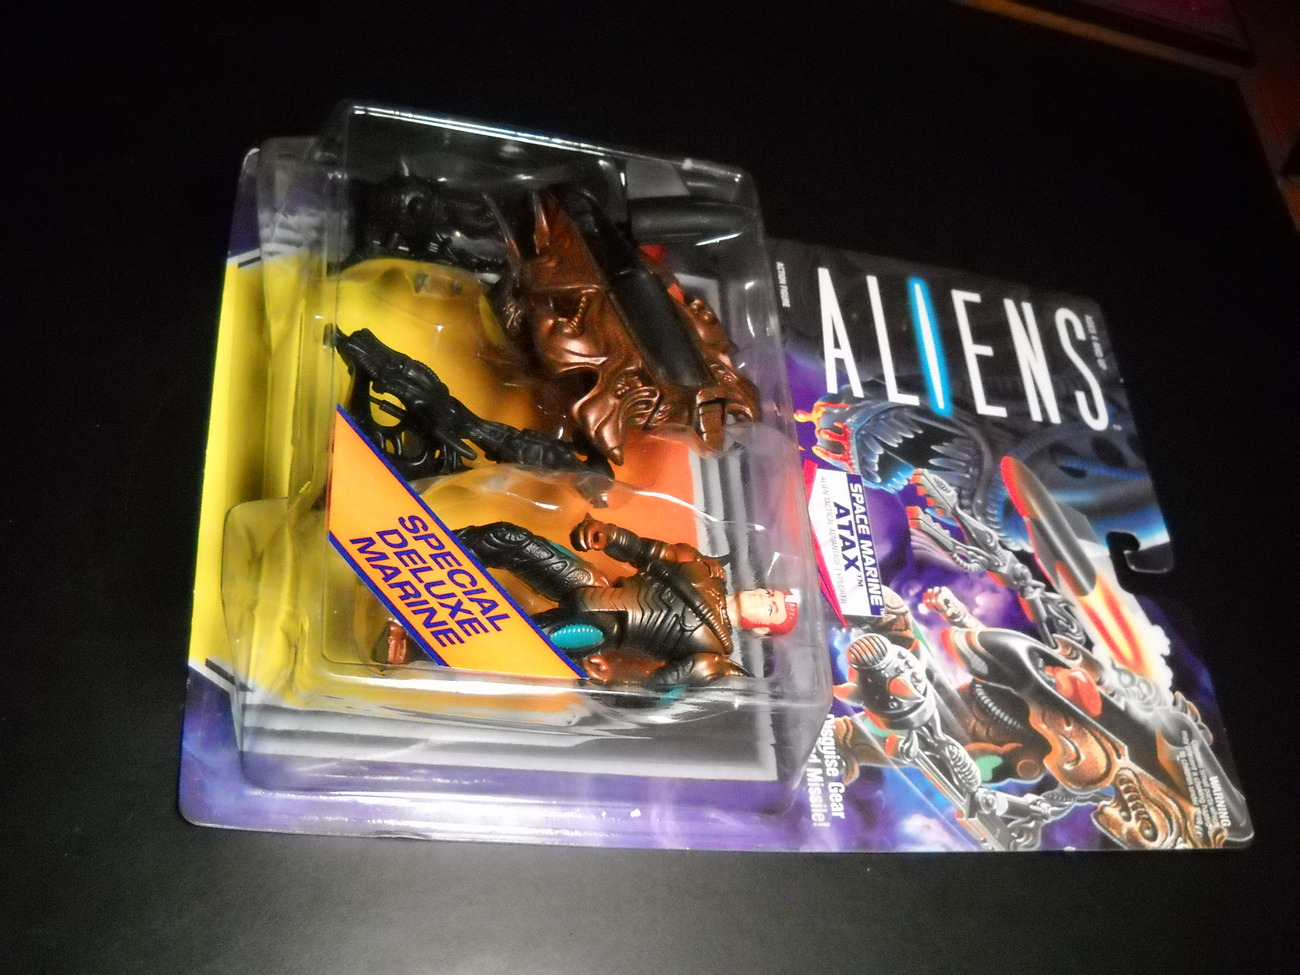 Toy aliens kenner 1992 atax in alien disguise deluxe space marine moc 01